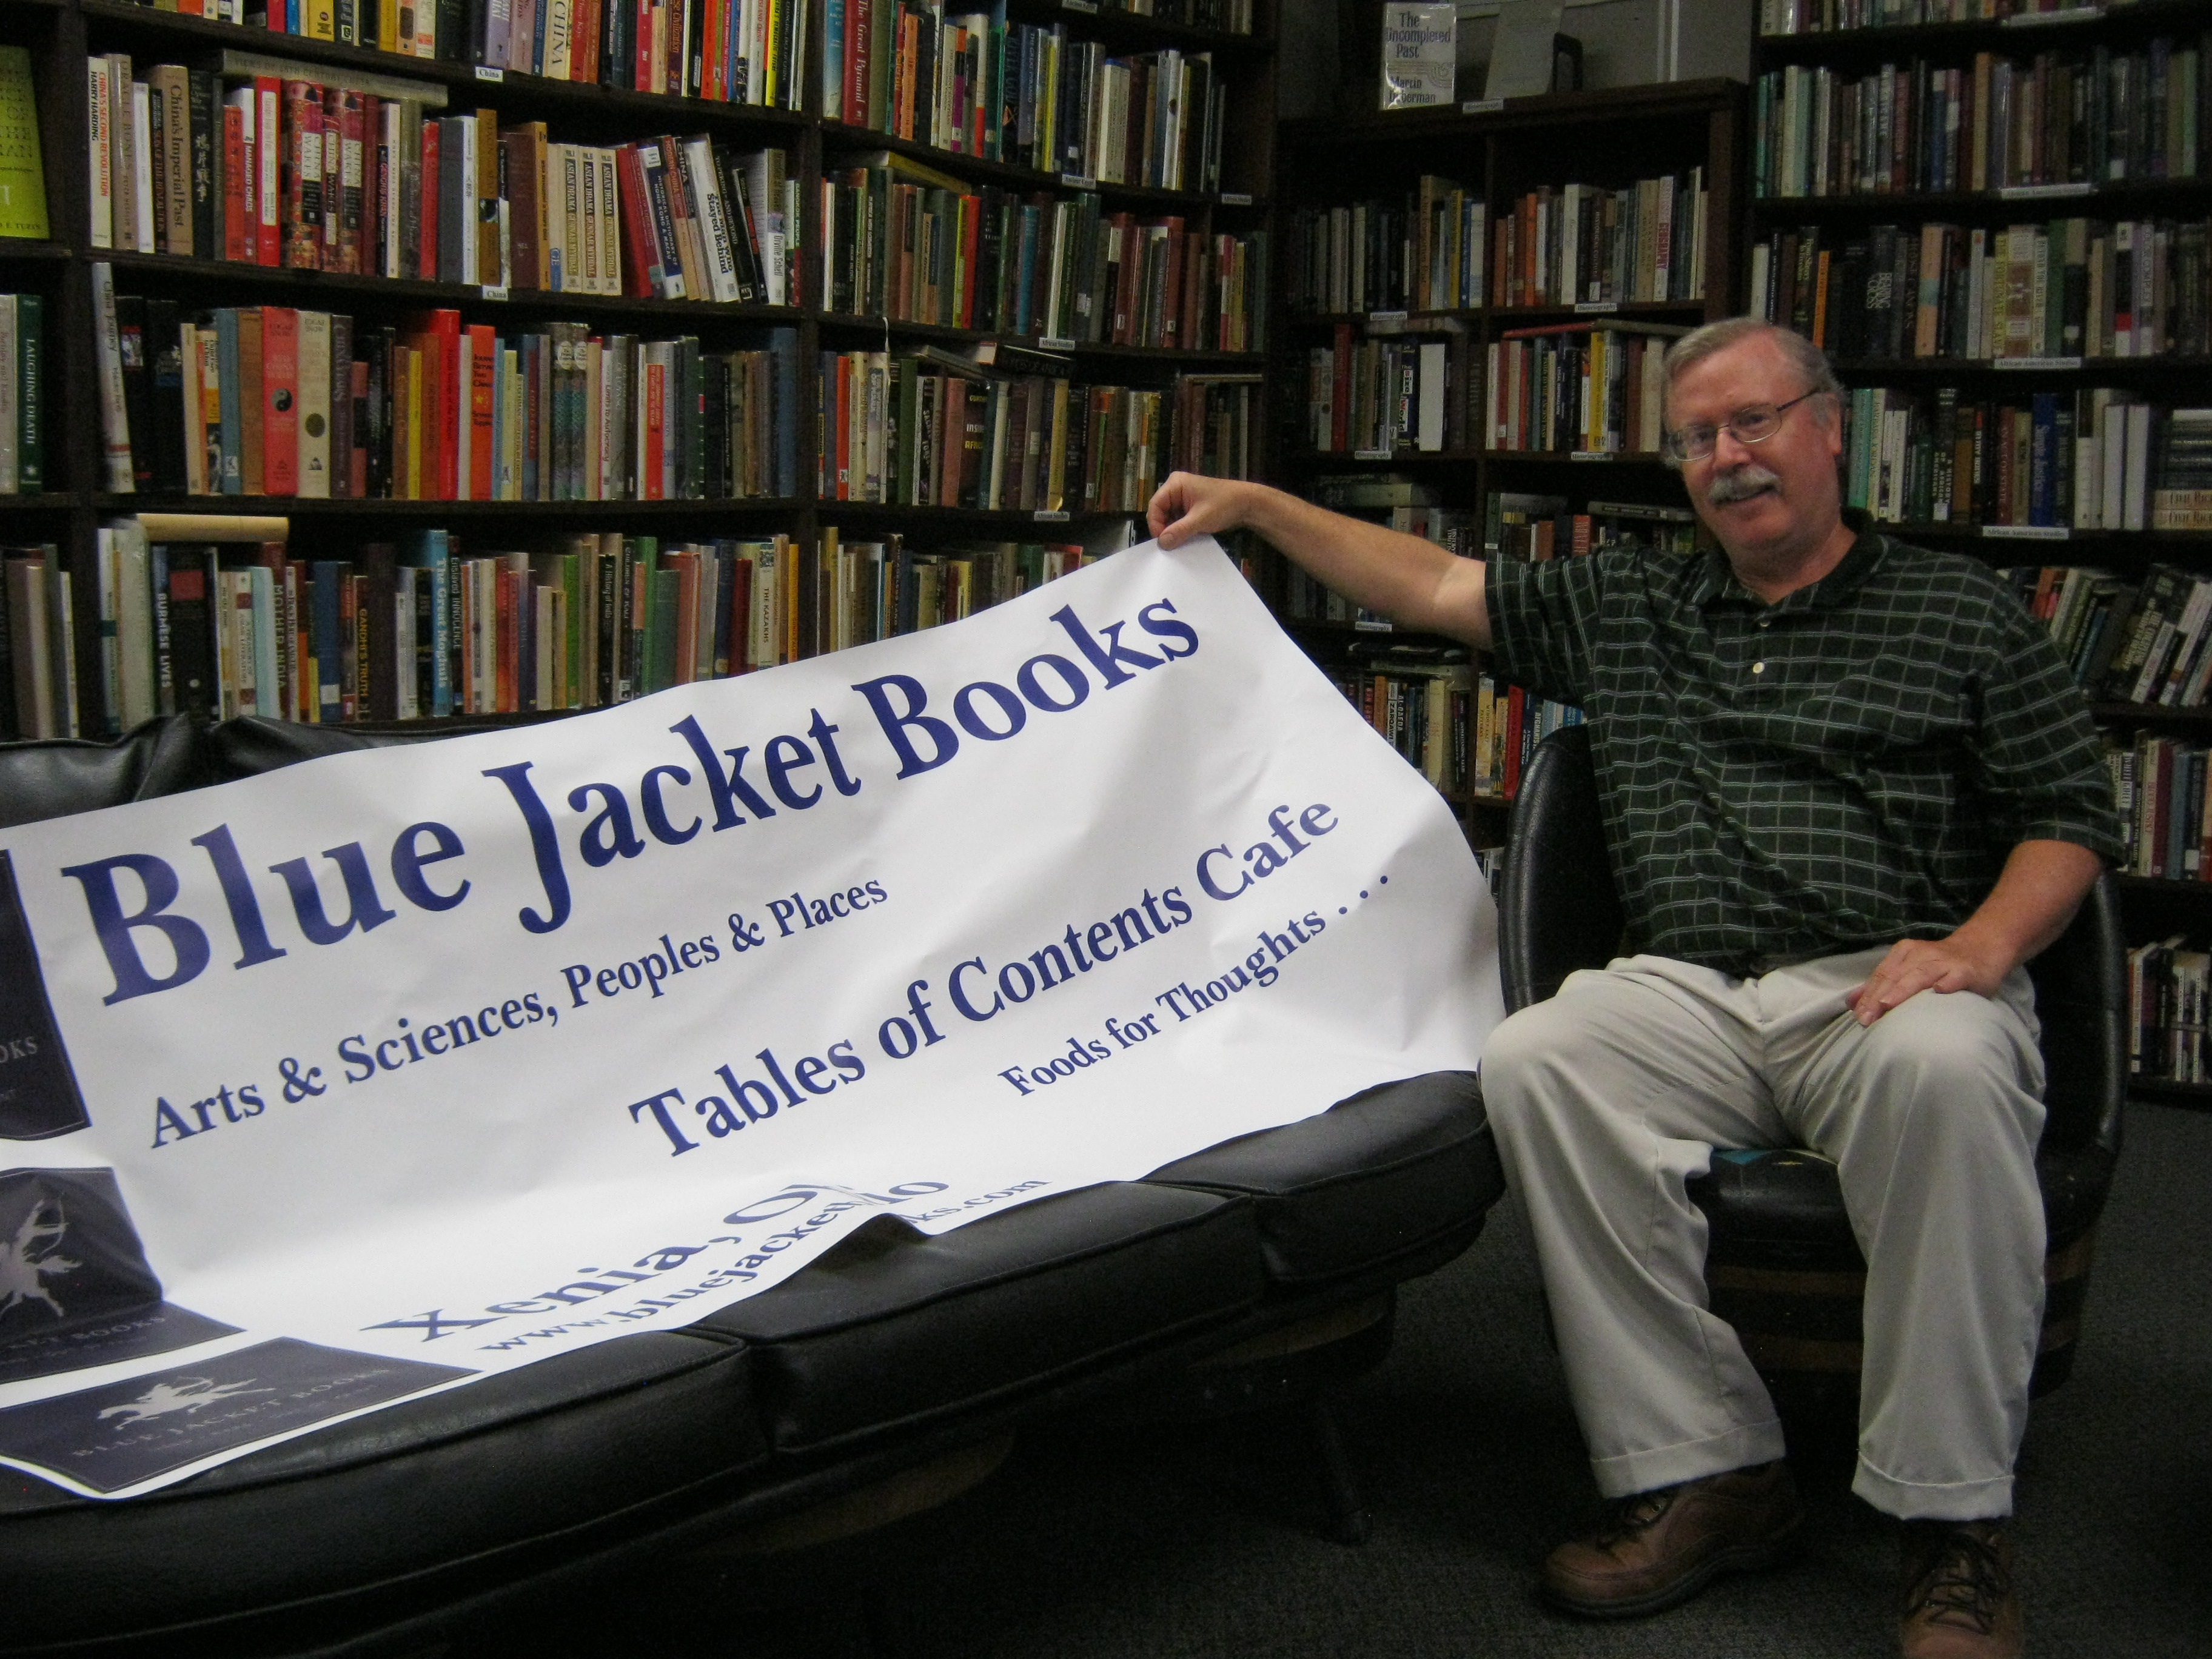 Bookstore Review: Blue Jacket Books | Bob on Books